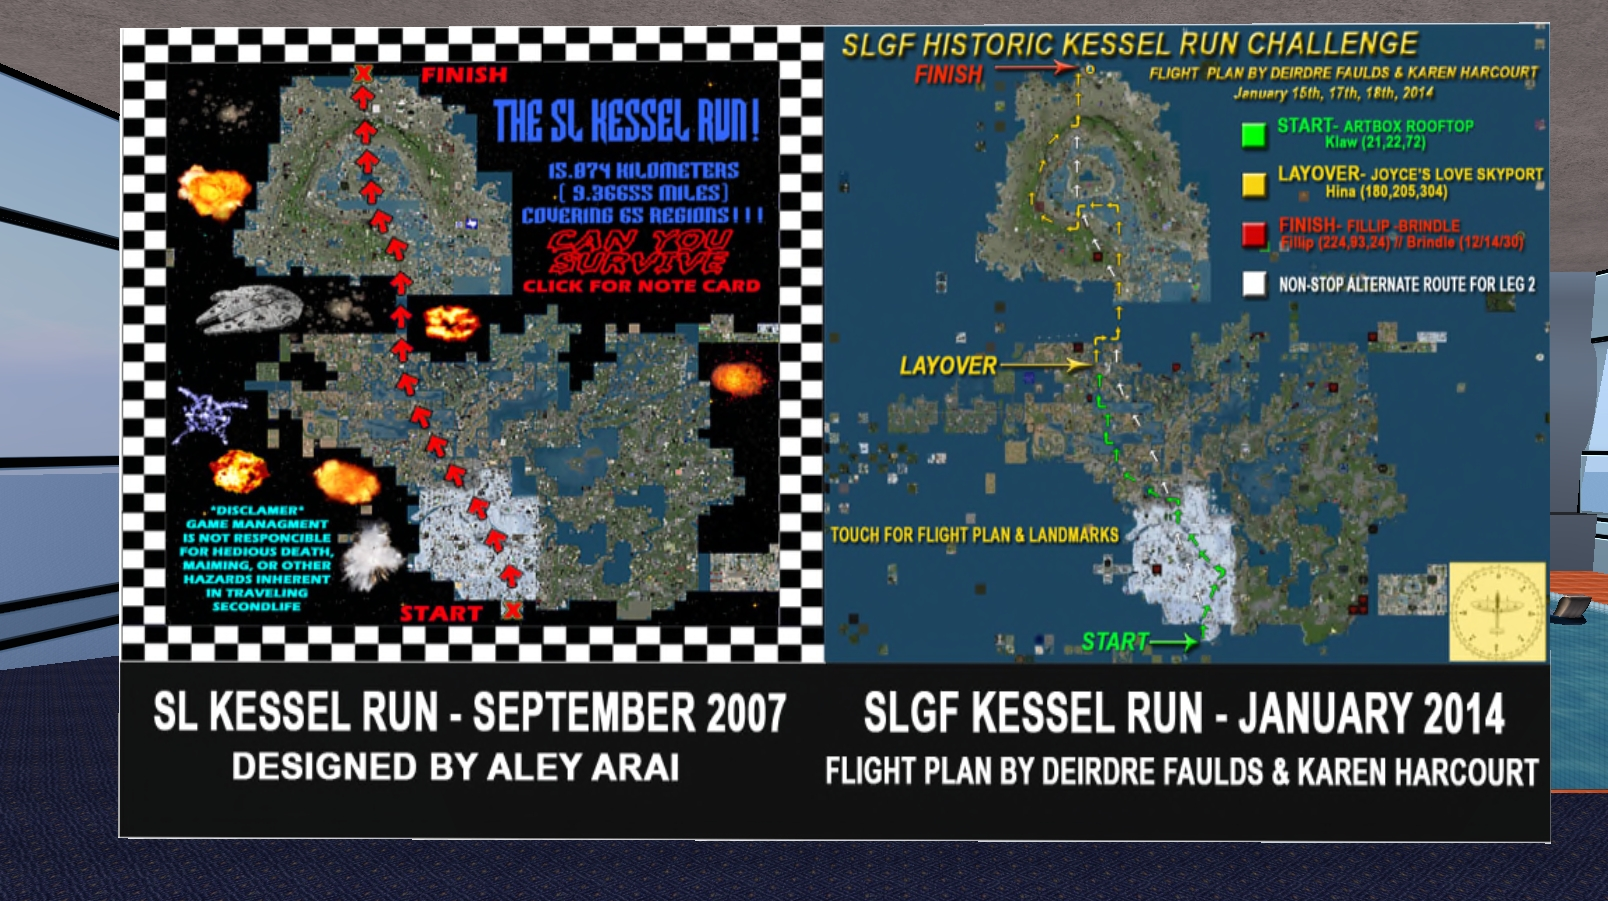 SLGF Historic Kessel Run Challenge.jpg